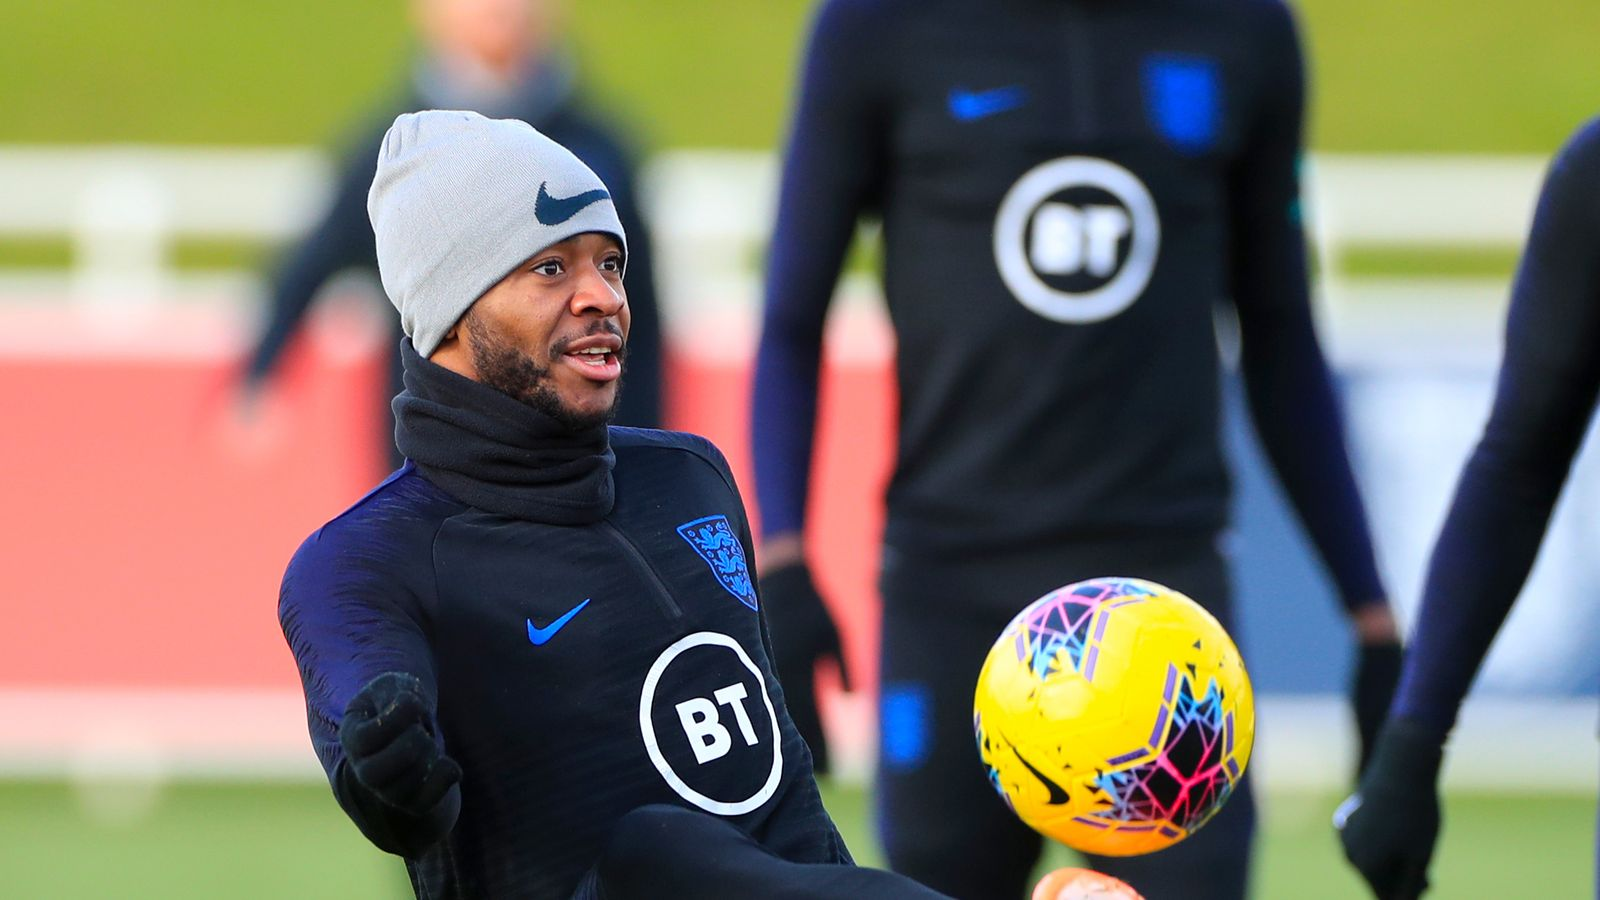 Southgate accepts Sterling may have 'the hump'